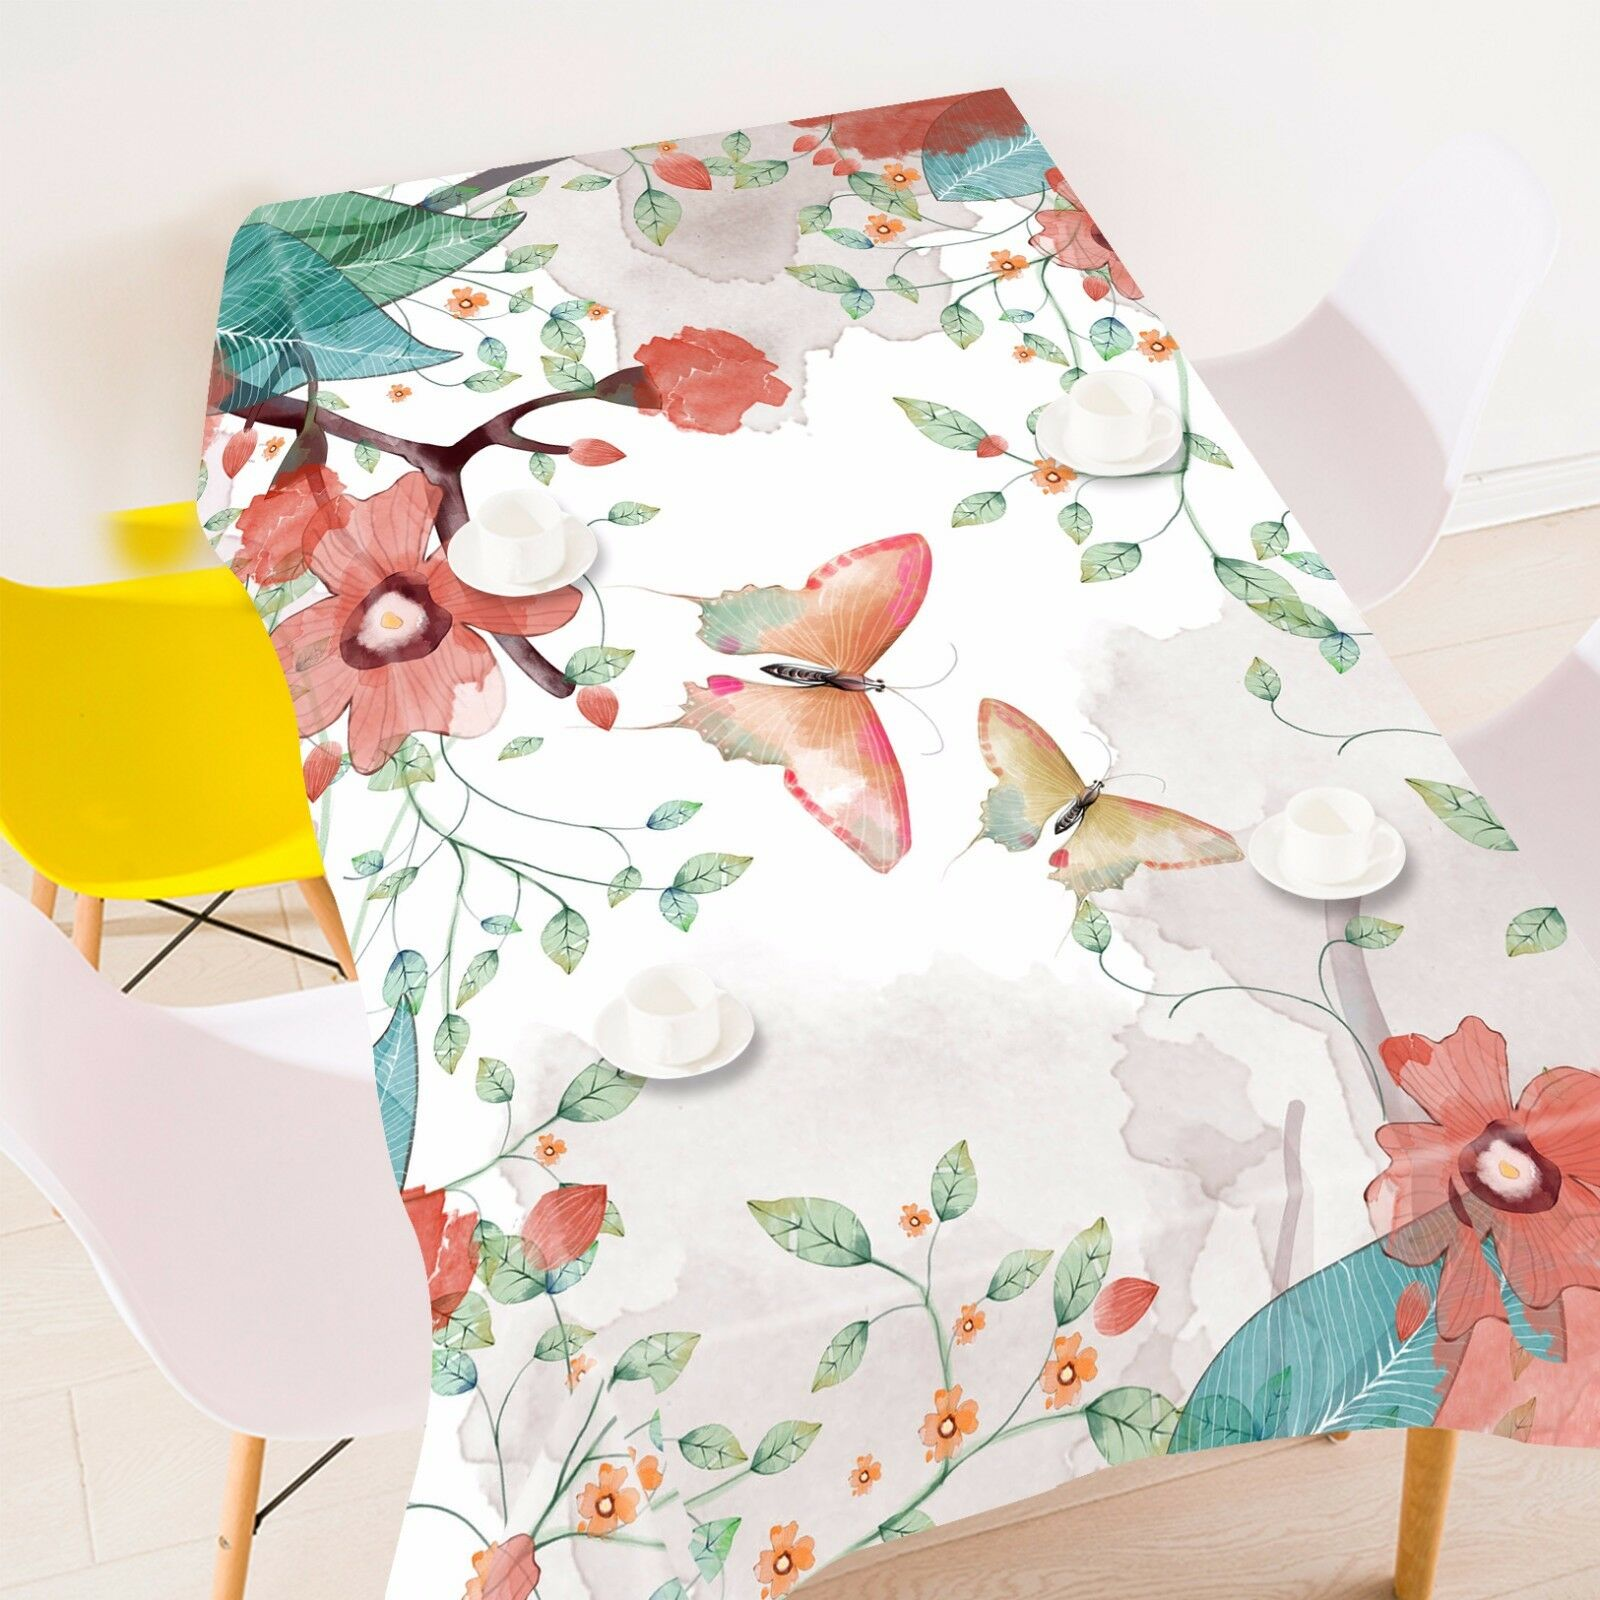 3D Butterfly 7 Tablecloth Table Cover Cloth Birthday Party Event AJ WALLPAPER UK